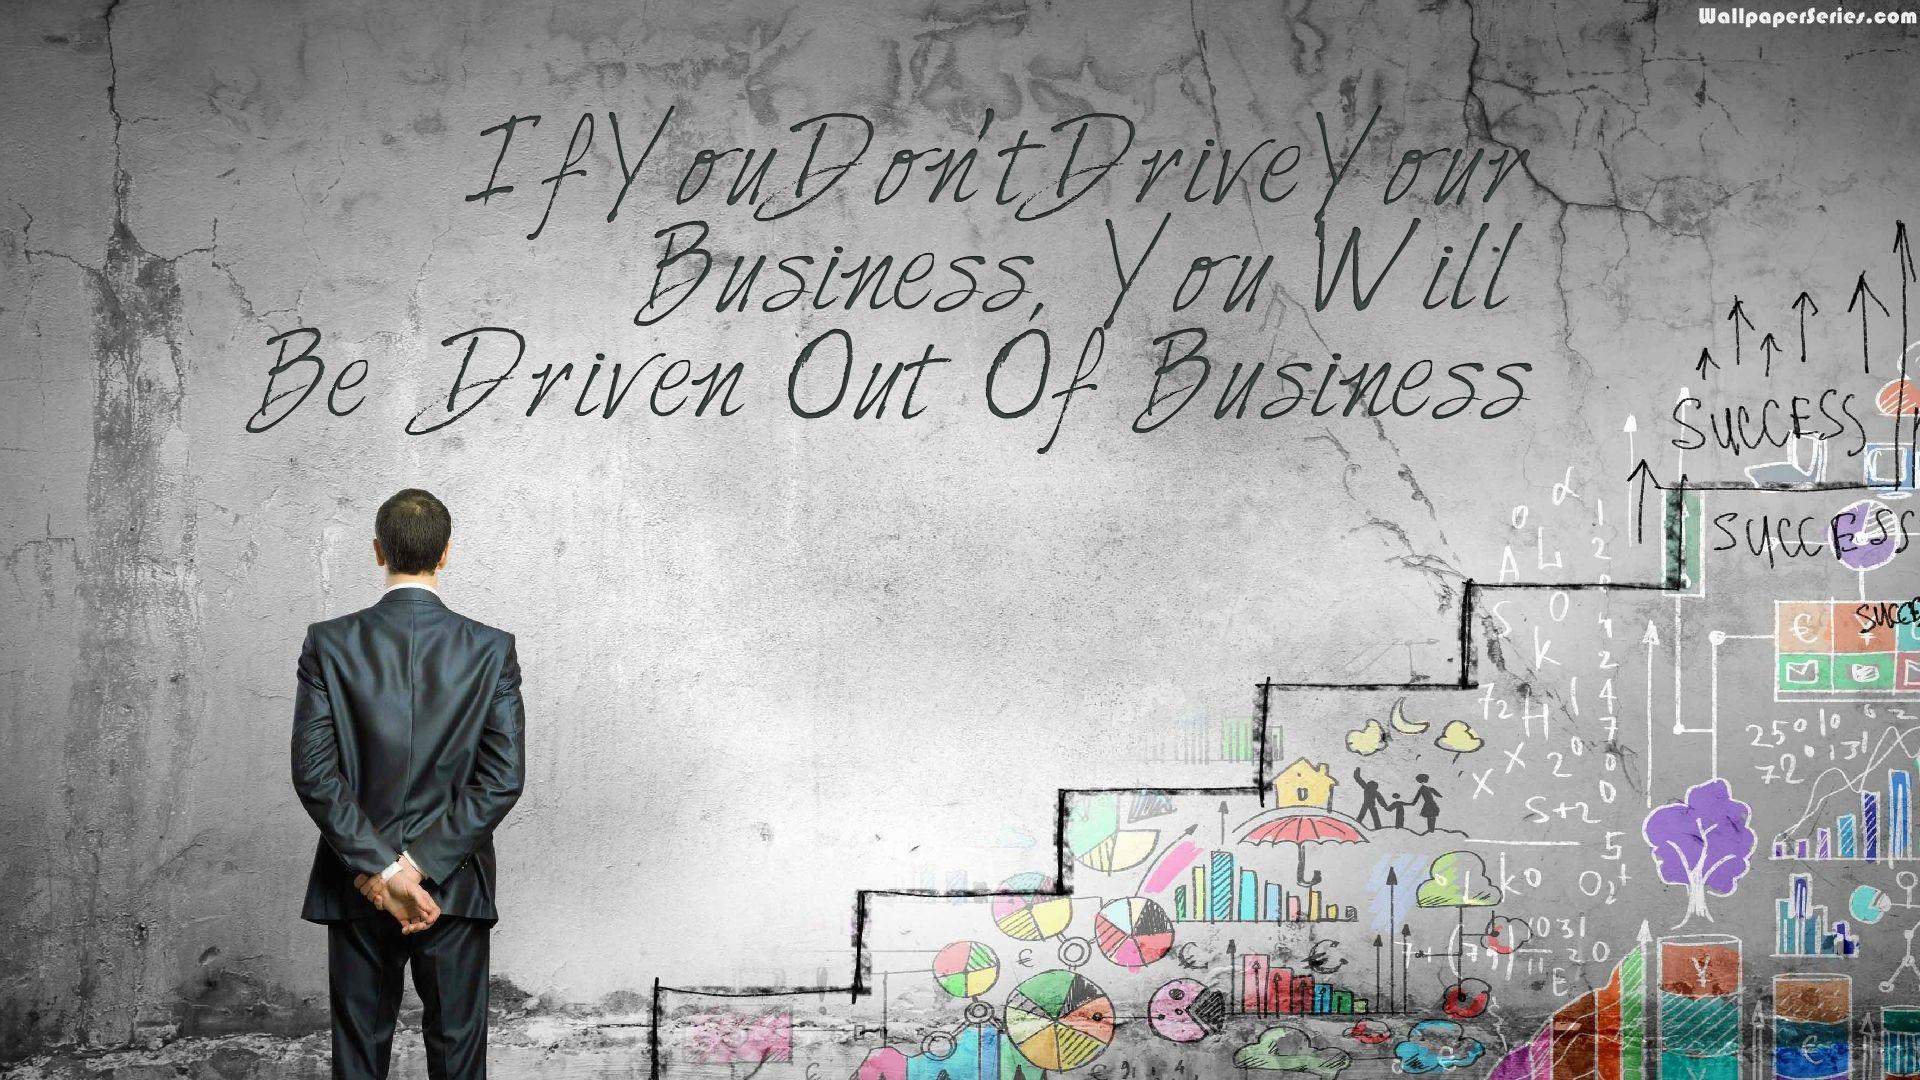 Success Quotes Hd Wallpapers 1080p Business Wallpapers Wallpaper Cave